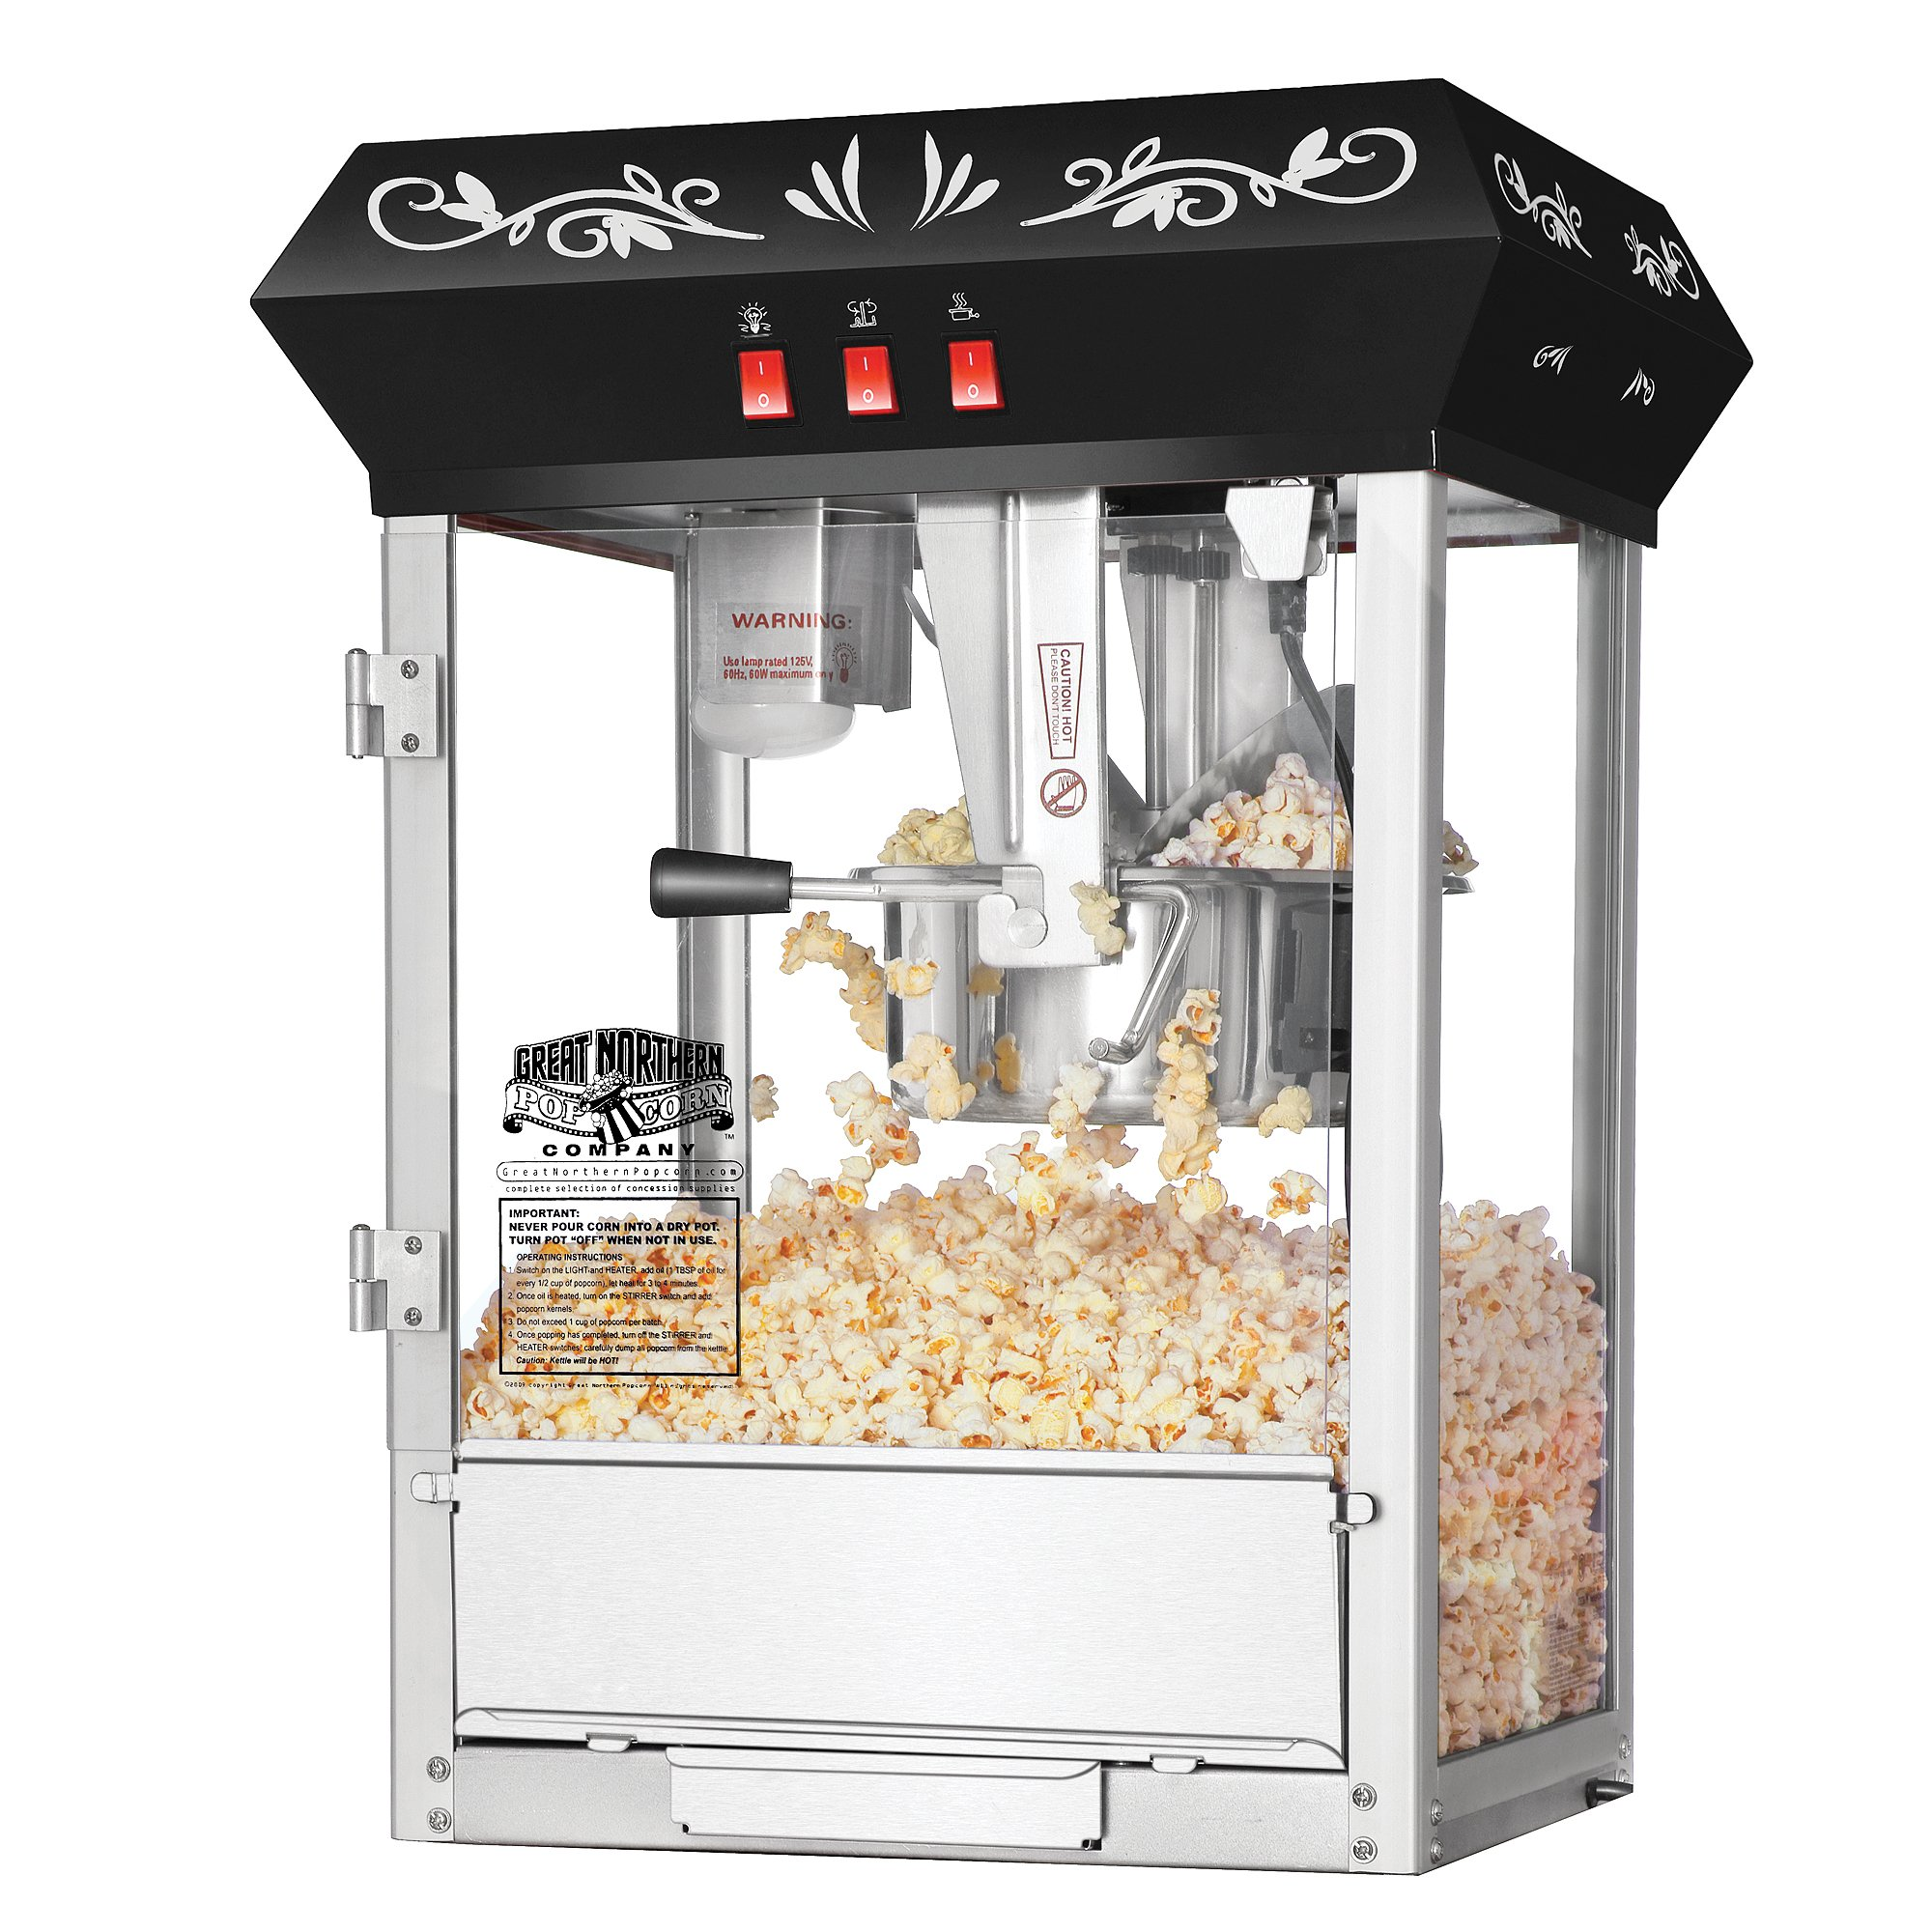 Great Northern Popcorn Black 8 oz. Ounce Foundation Vintage Style Popcorn Machine and Cart by Great Northern Popcorn Company (Image #3)